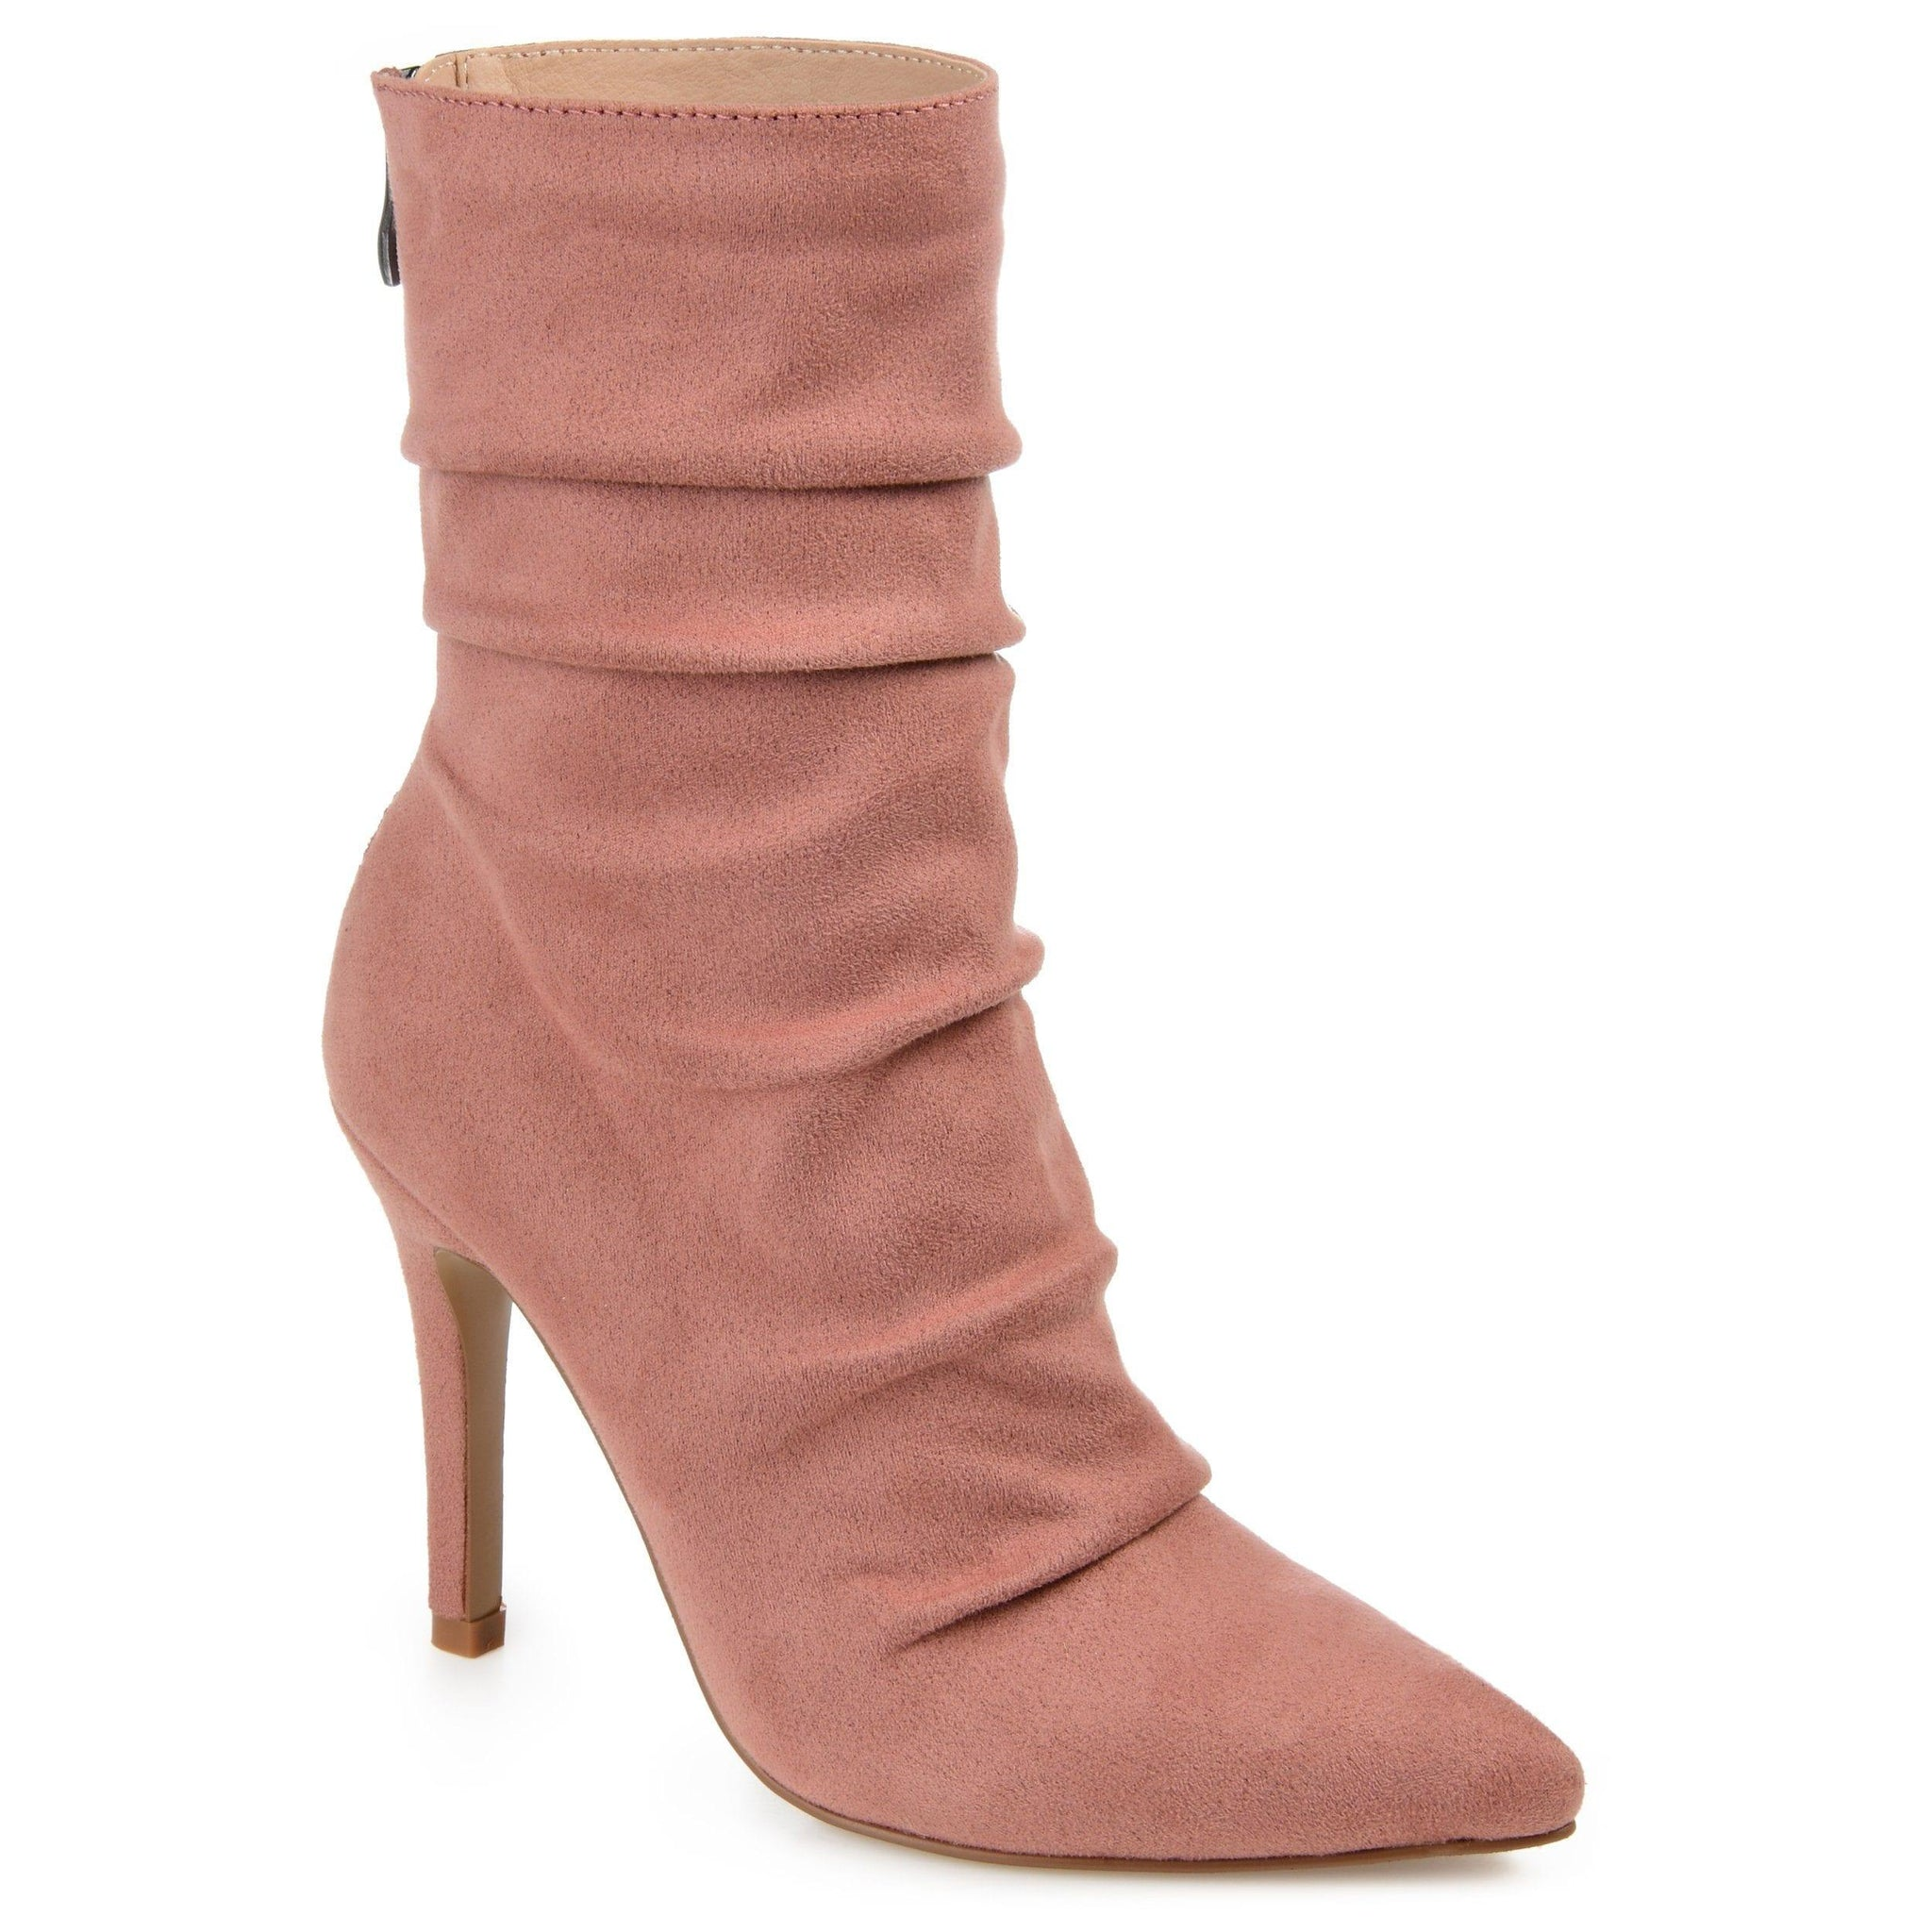 MARKIE SHOES Journee Collection Blush 8